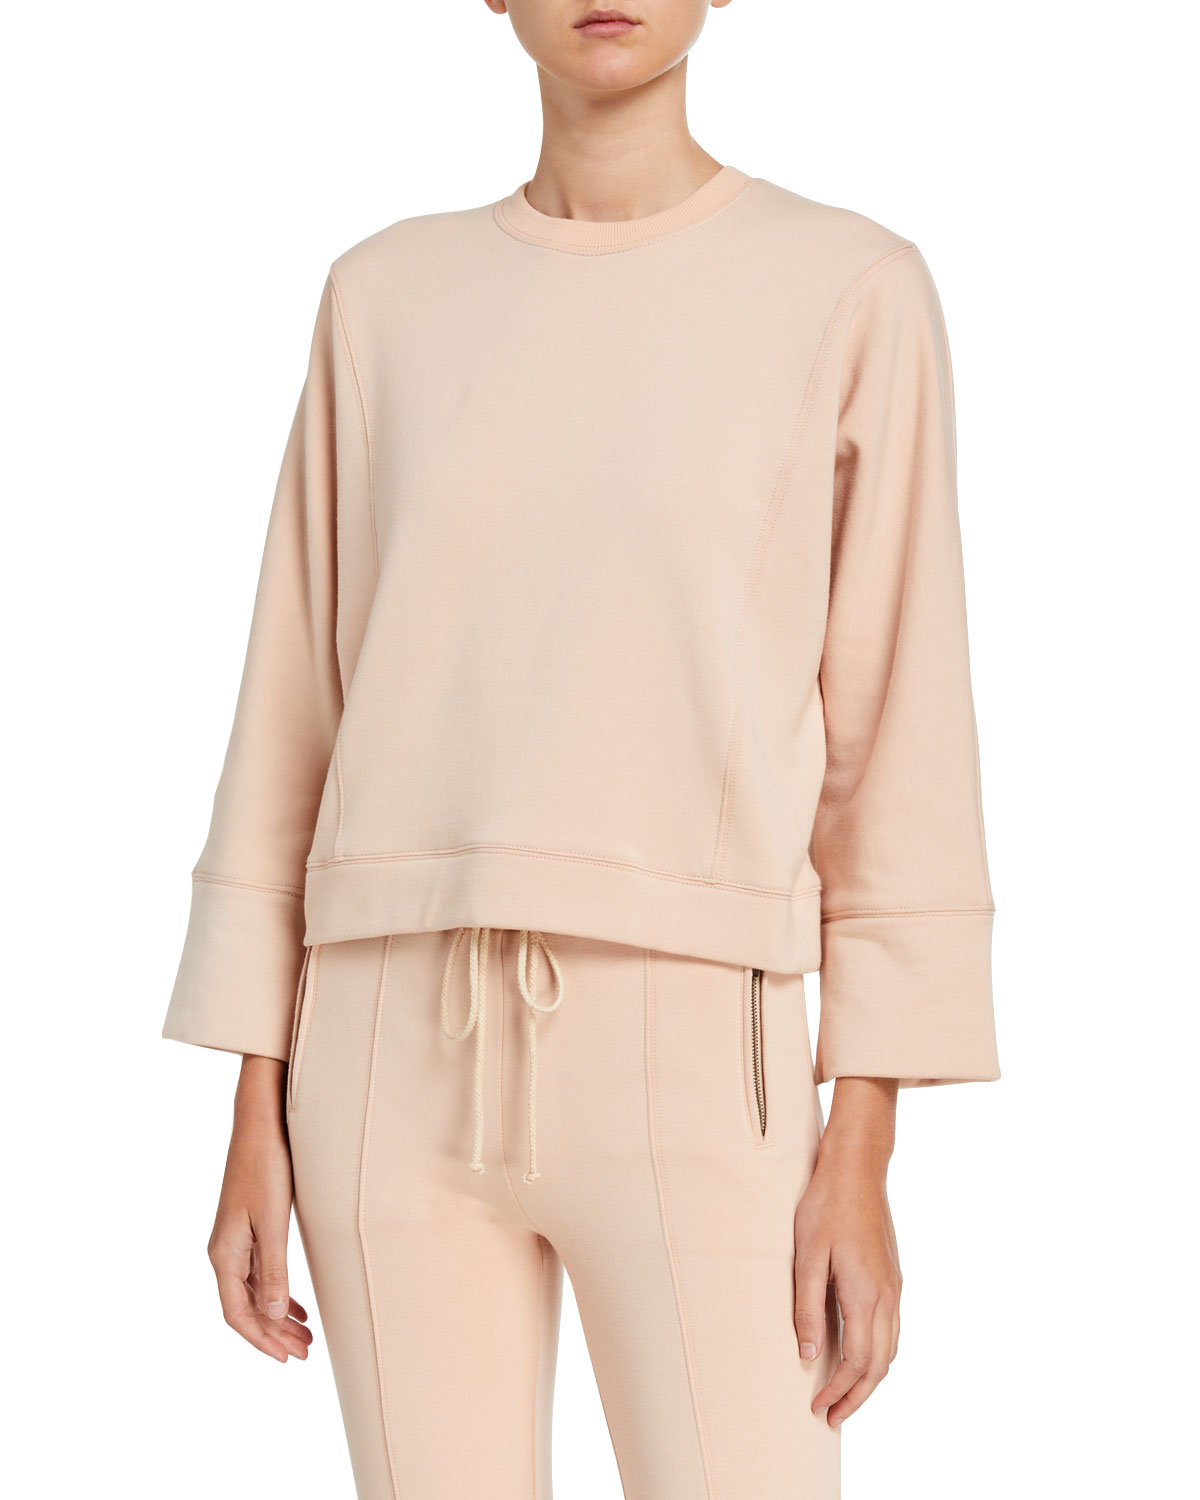 Joie Sweaters ASHTON CREWNECK PULLOVER SWEATER